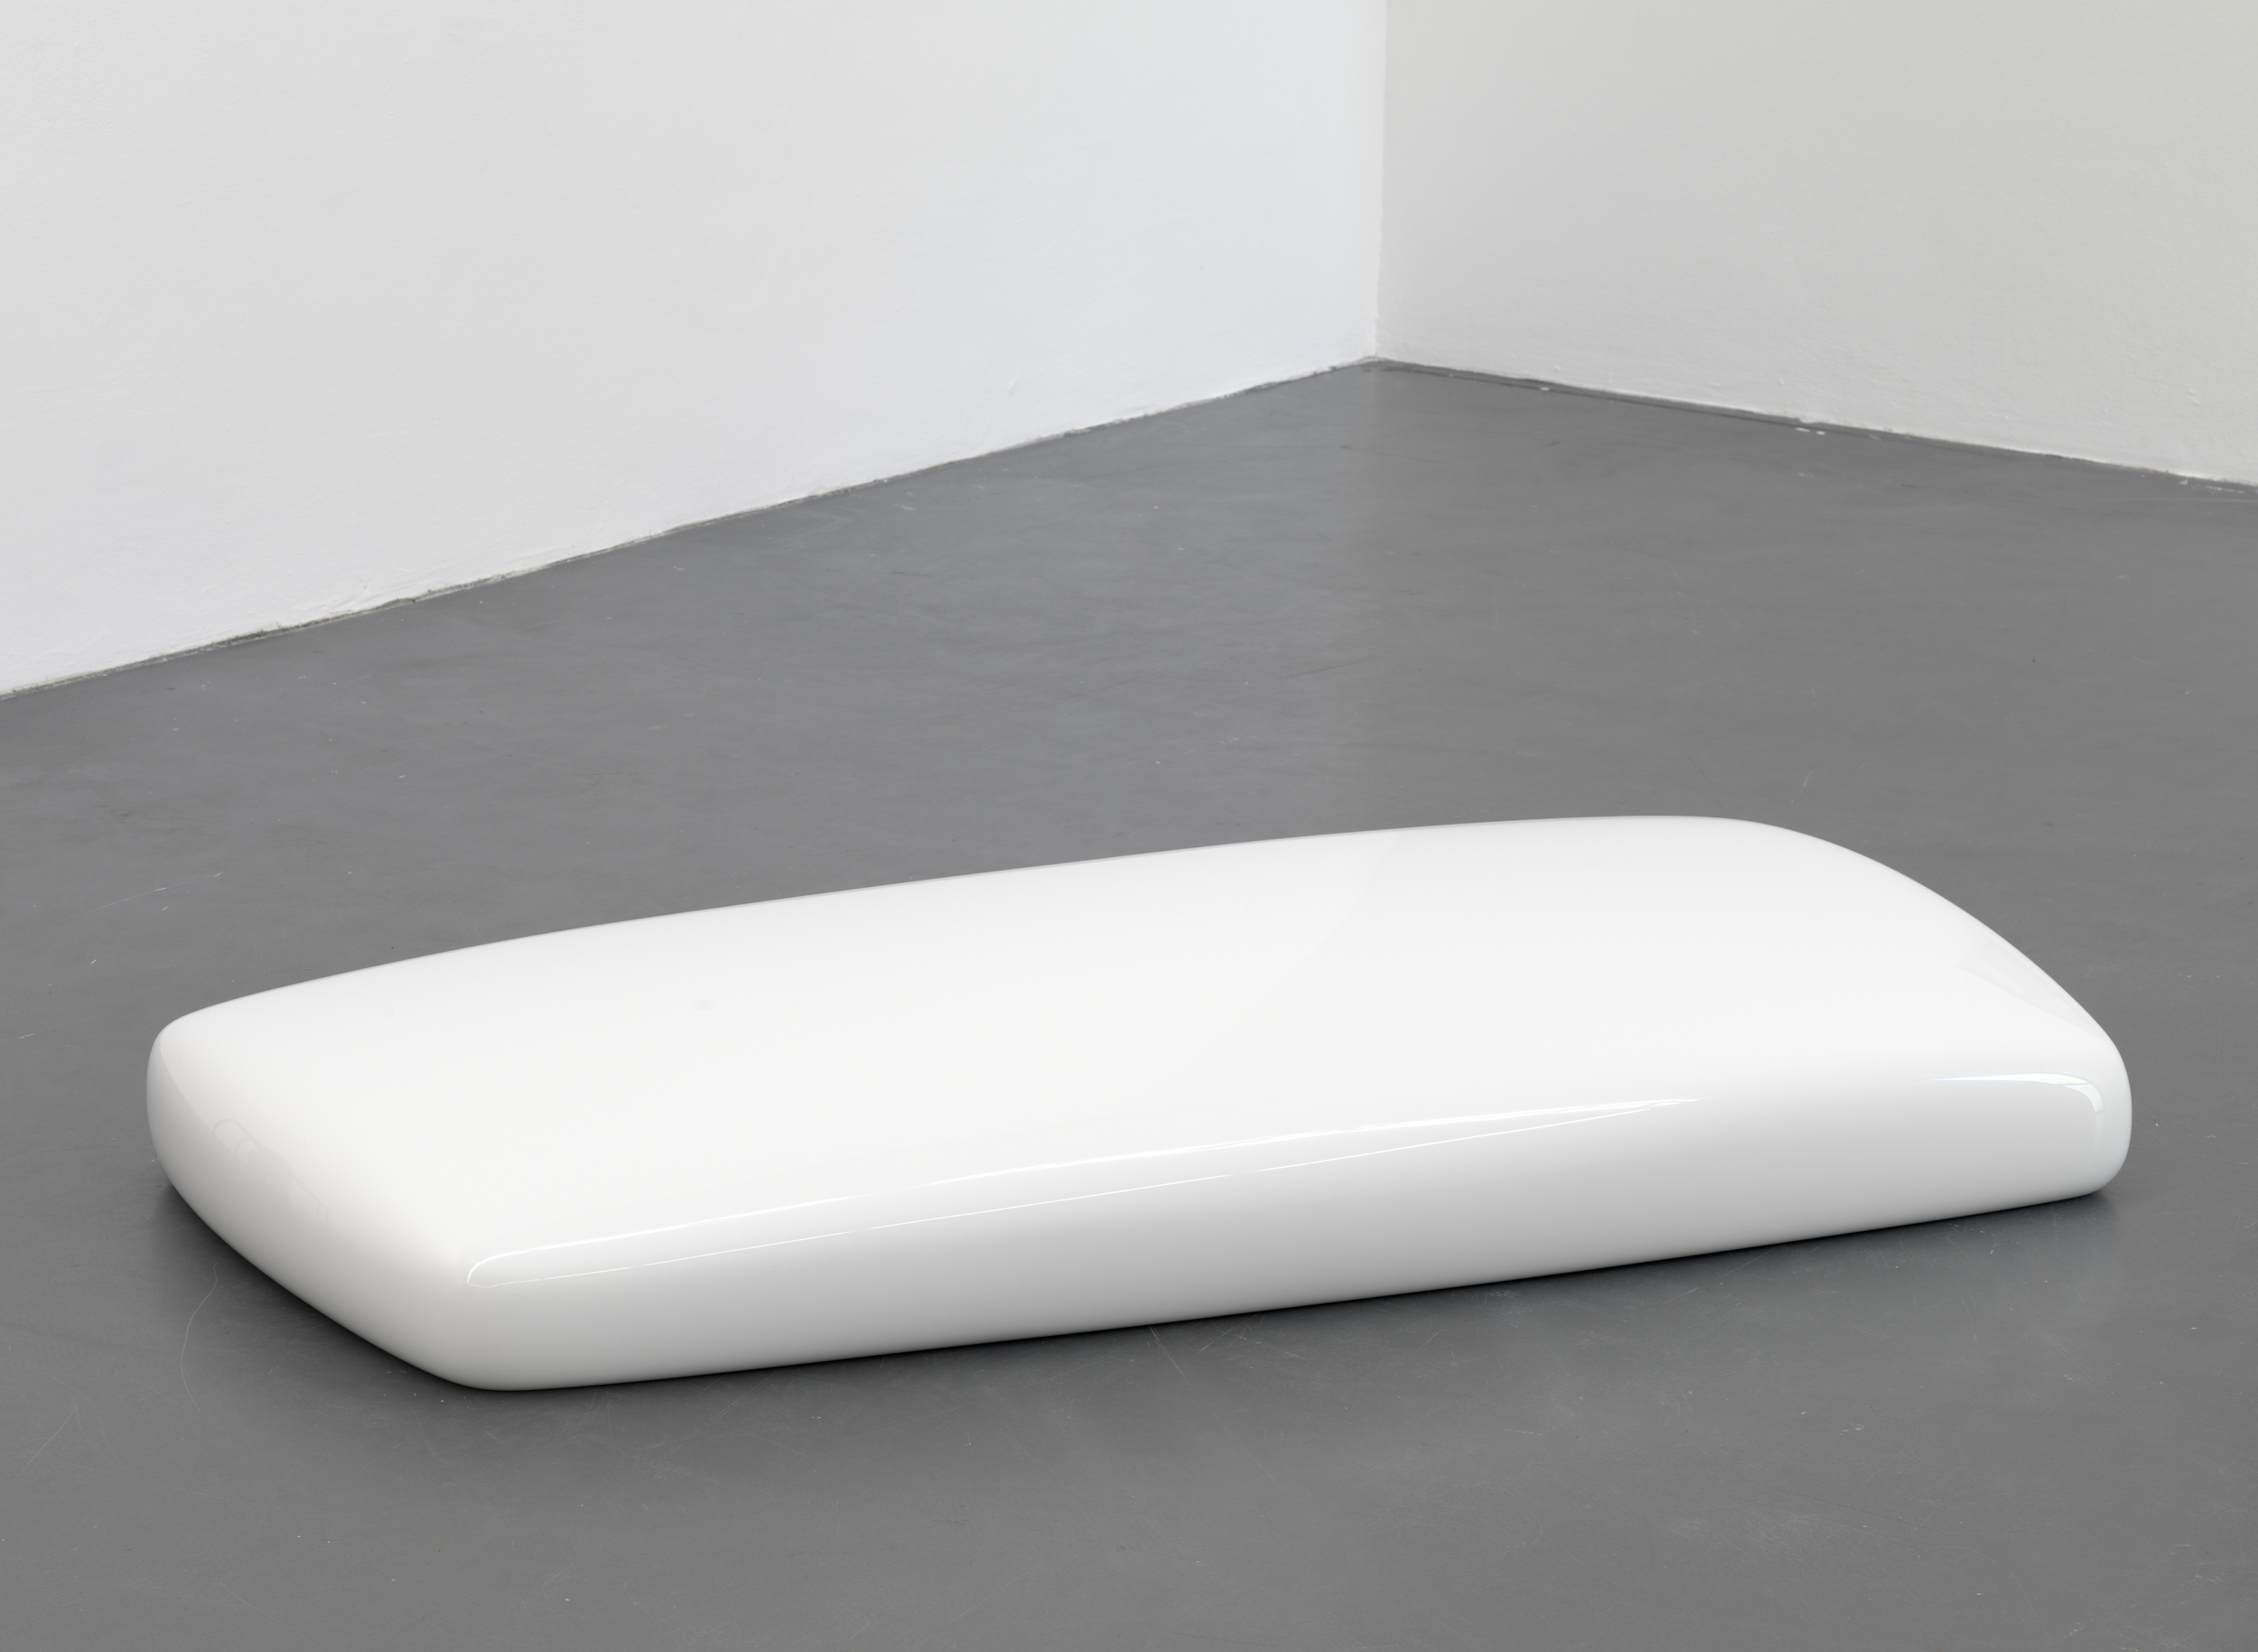 Untitled, 2008, polyester resin, 28 x 200 x 102 cm